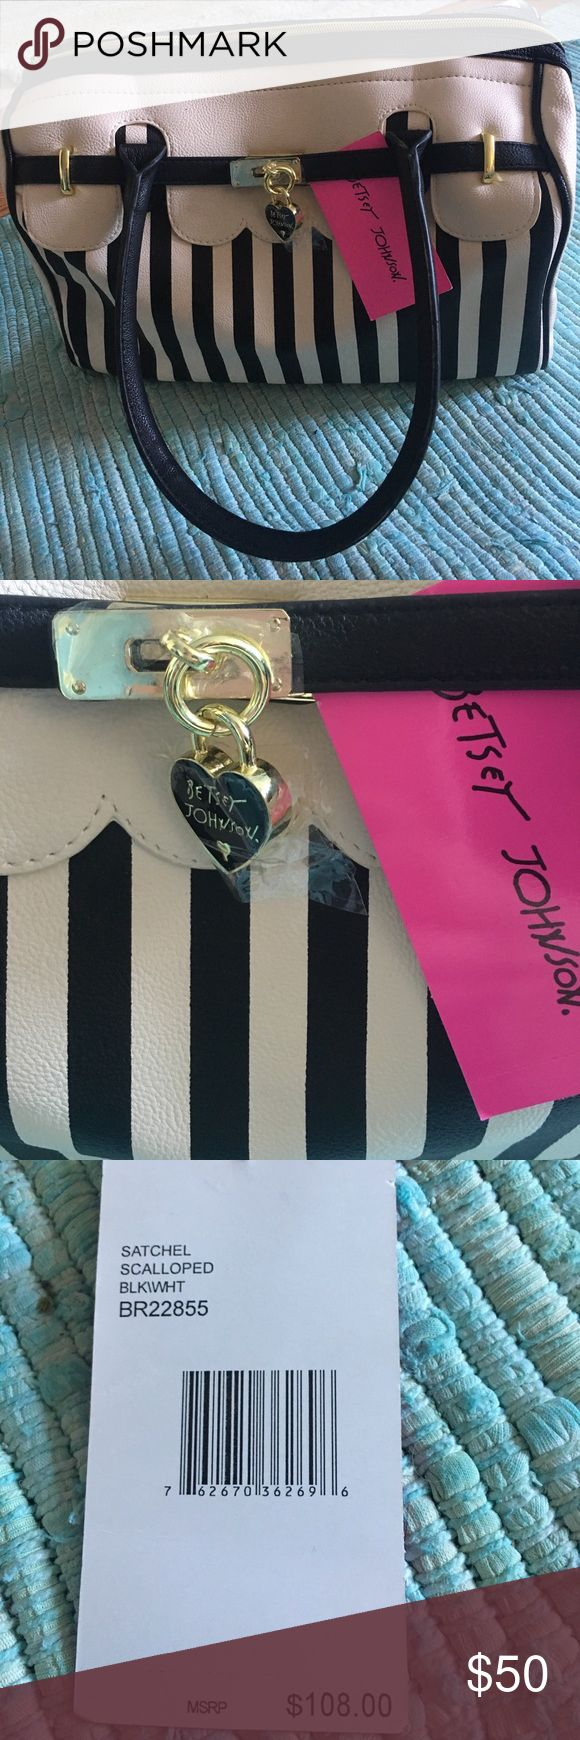 Betsy Johnson NWT striped purse Super cute, striped and scalloped. Never carried! NWT. Bundle for a great deal or submit an offer! 🌻 Betsey Johnson Bags Shoulder Bags